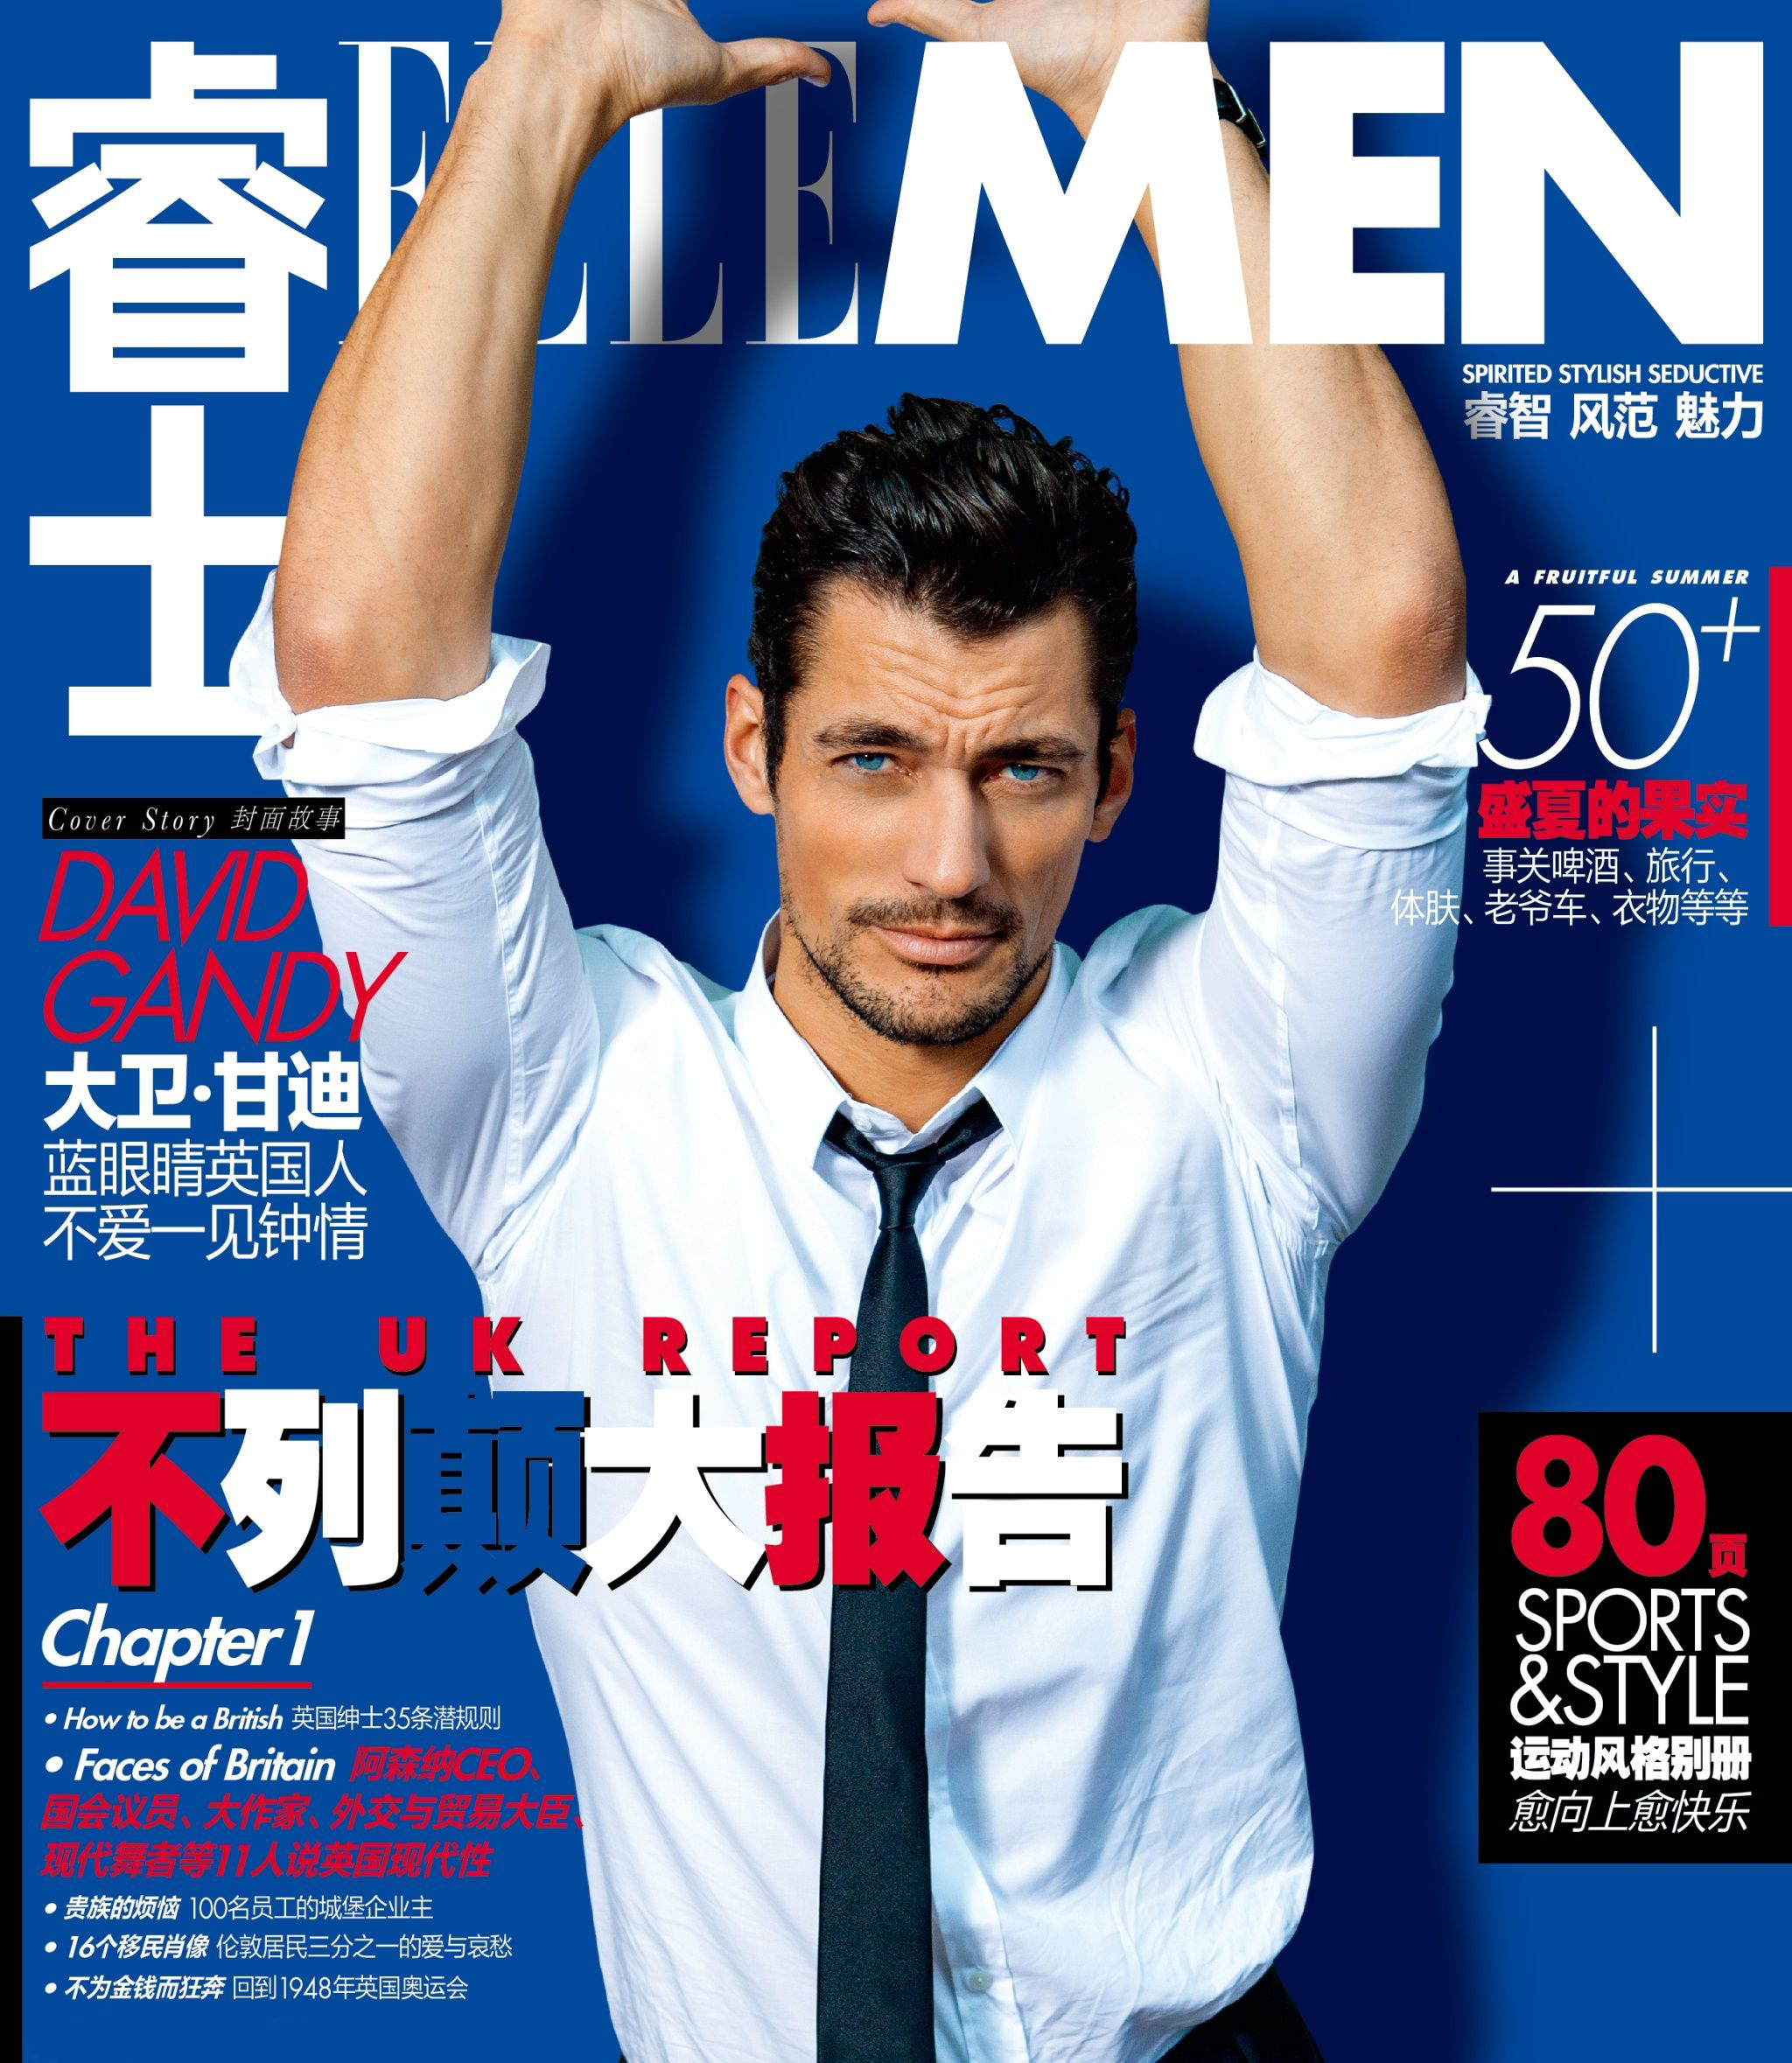 David Gandy is a Dashing Gentleman for Elle Men China's August 2012 Cover